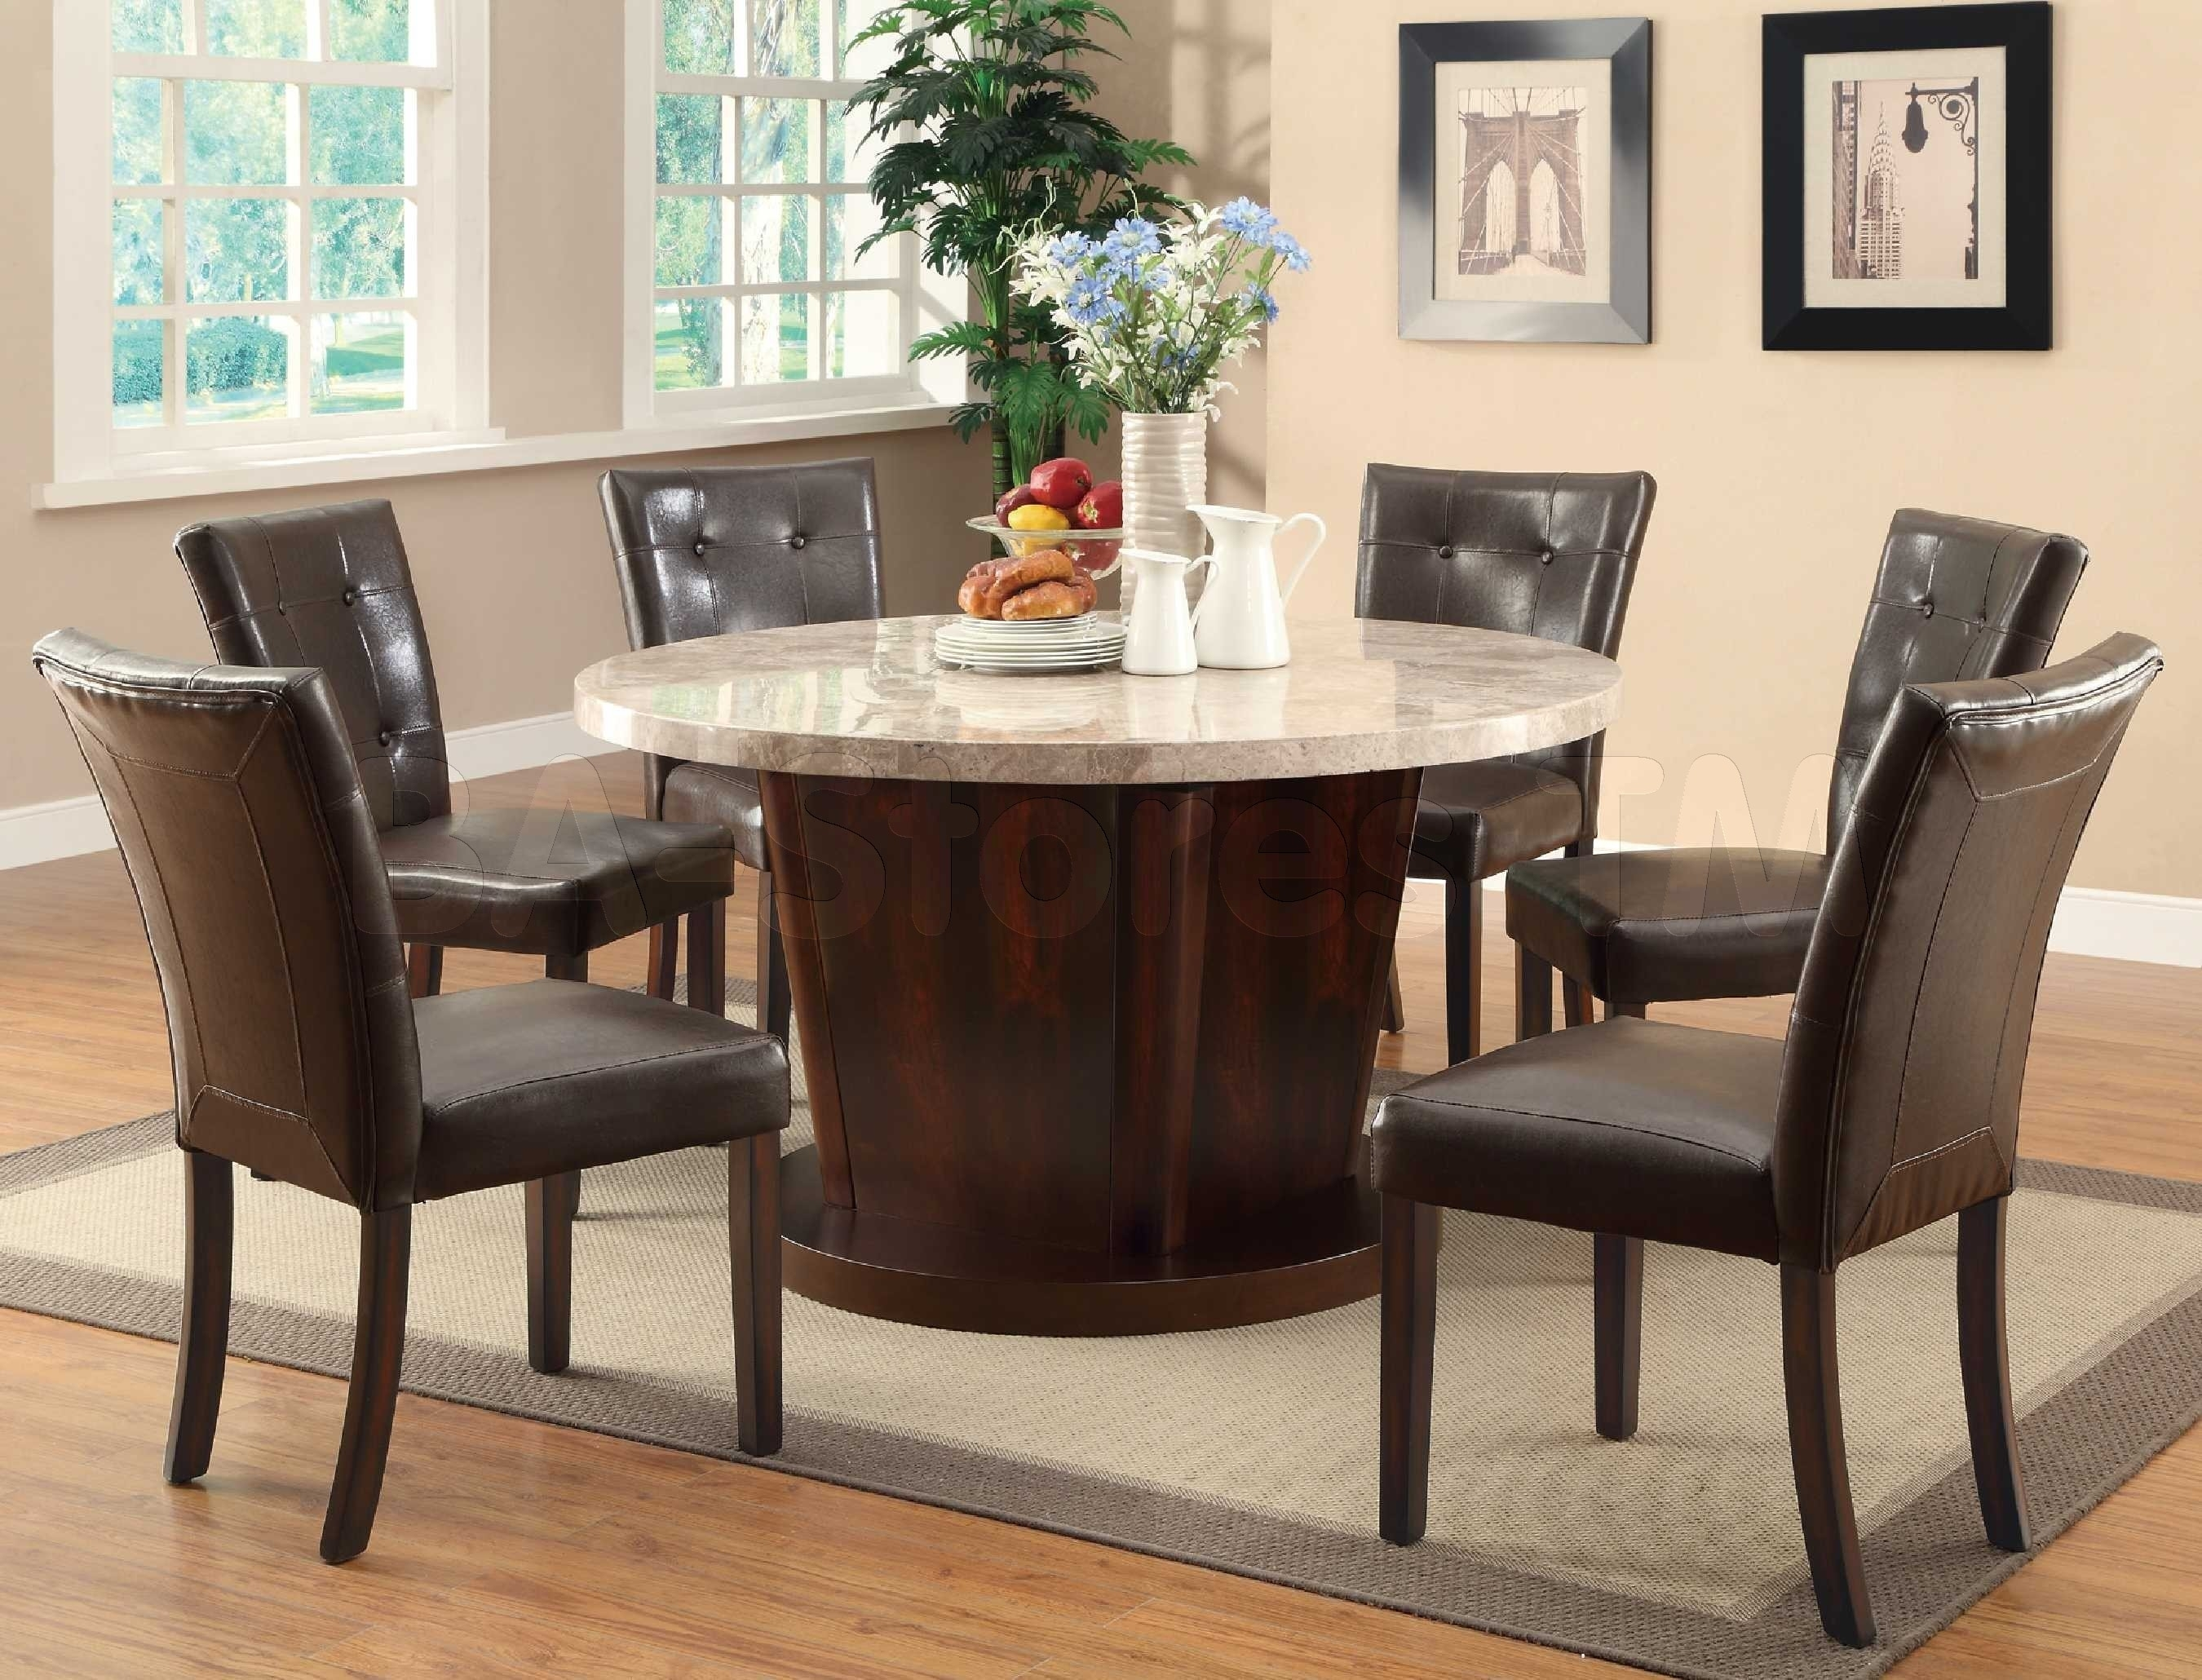 Decorating Nice Dining Table Set 6 Seater Round Room Sets For Home Throughout Most Recent Candice Ii Round Dining Tables (View 14 of 20)